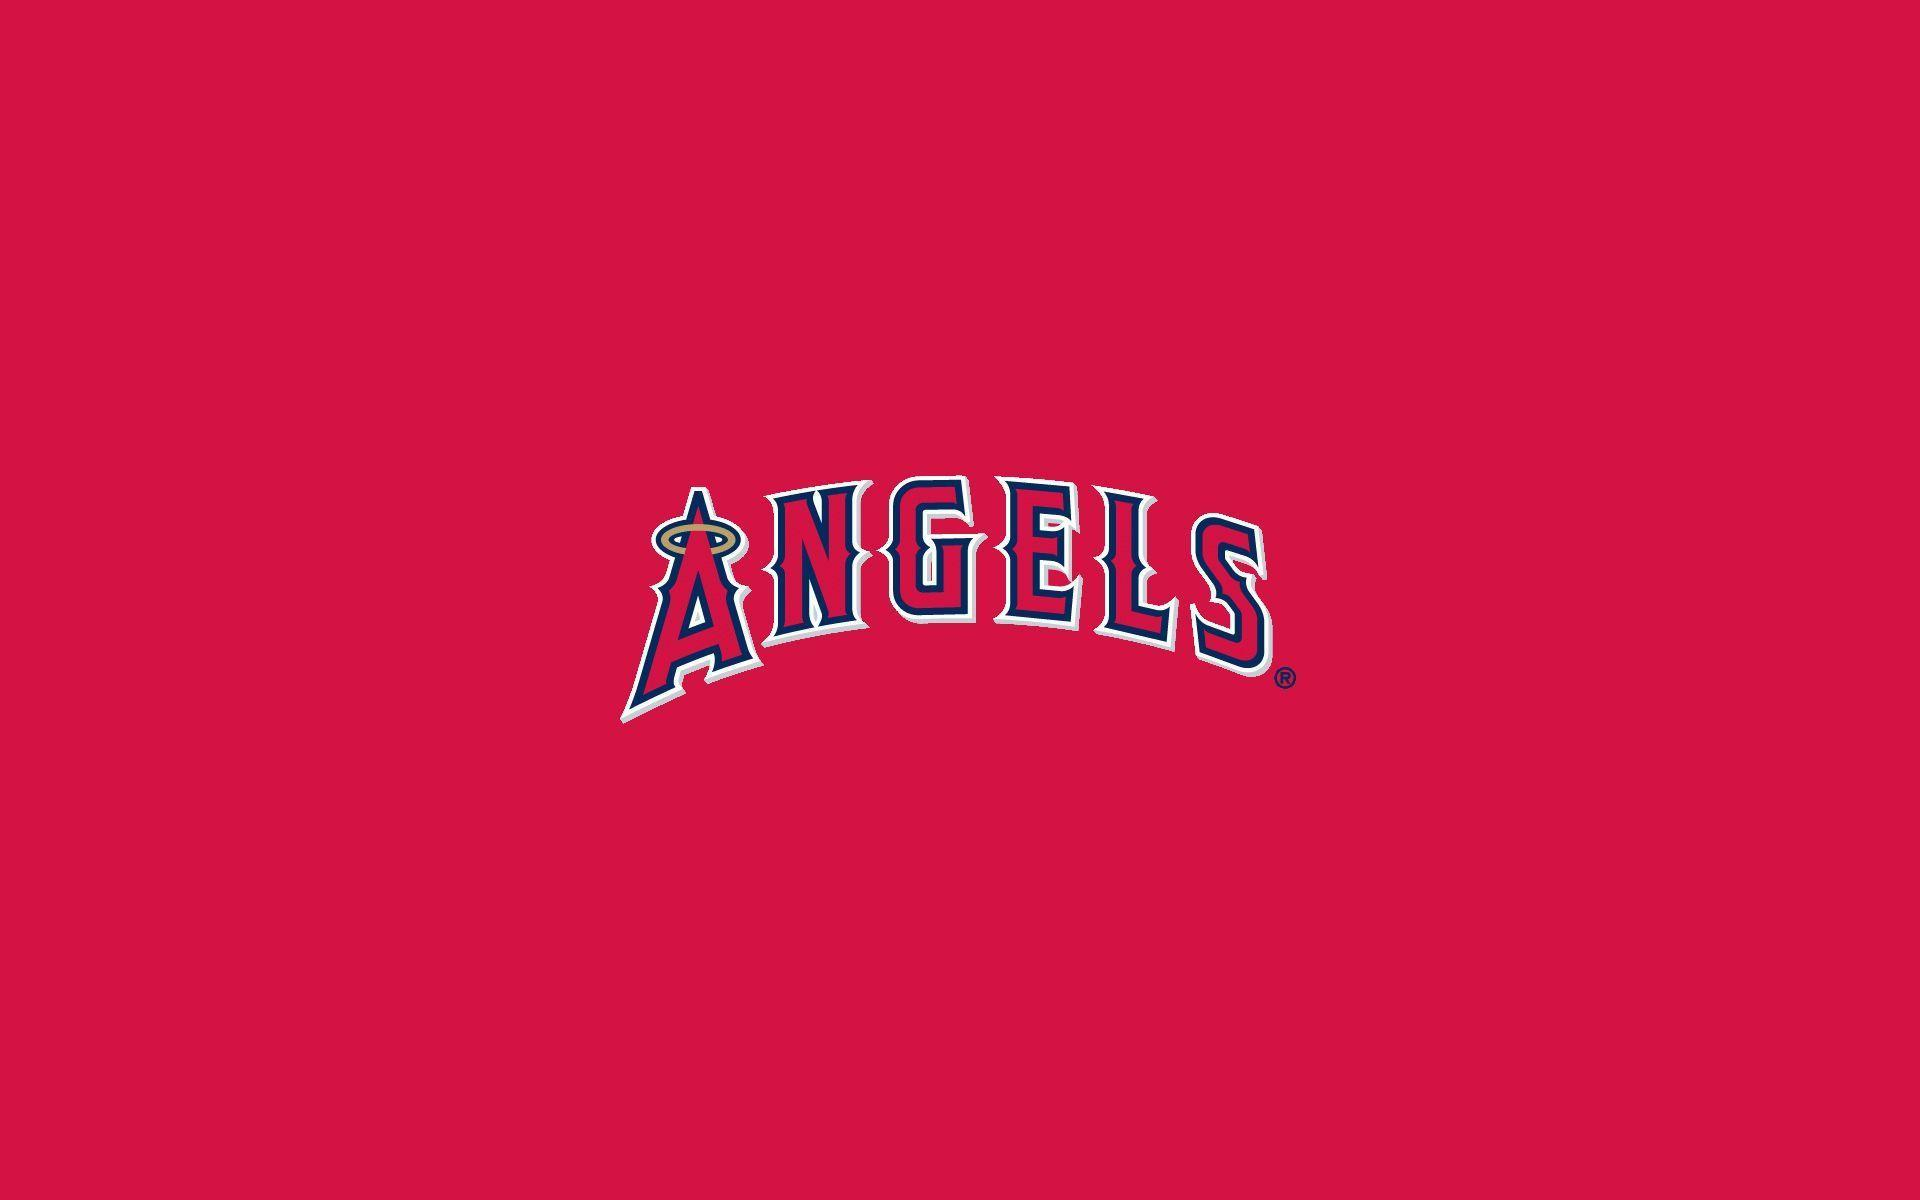 Image For > Angels Logo Baseball Wallpapers